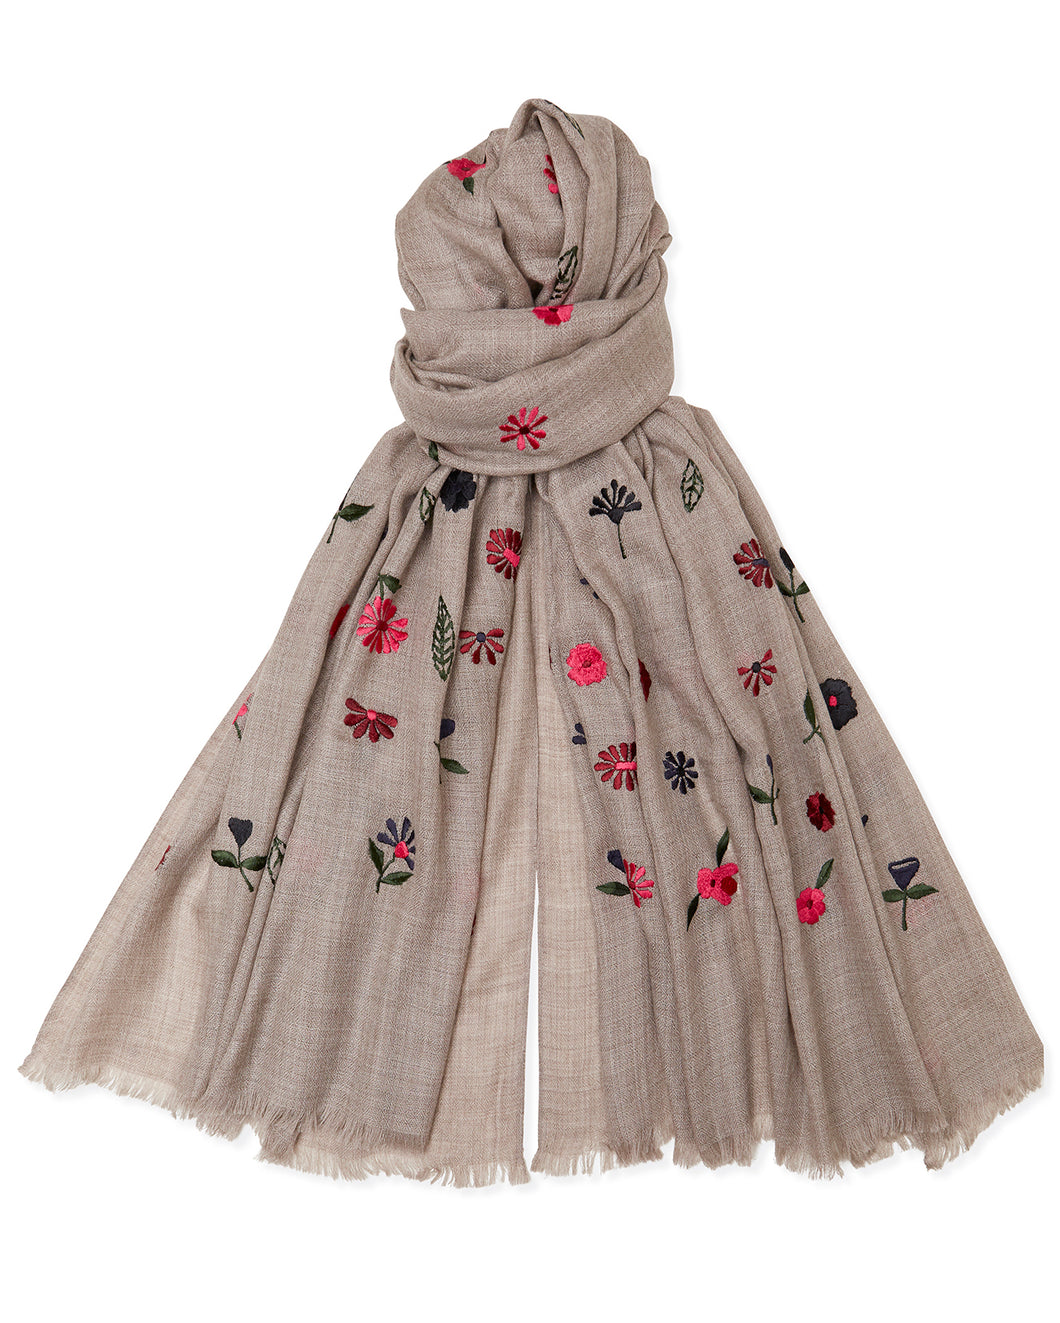 Embroidered Flower Pashmina - Natural/Pink/Black